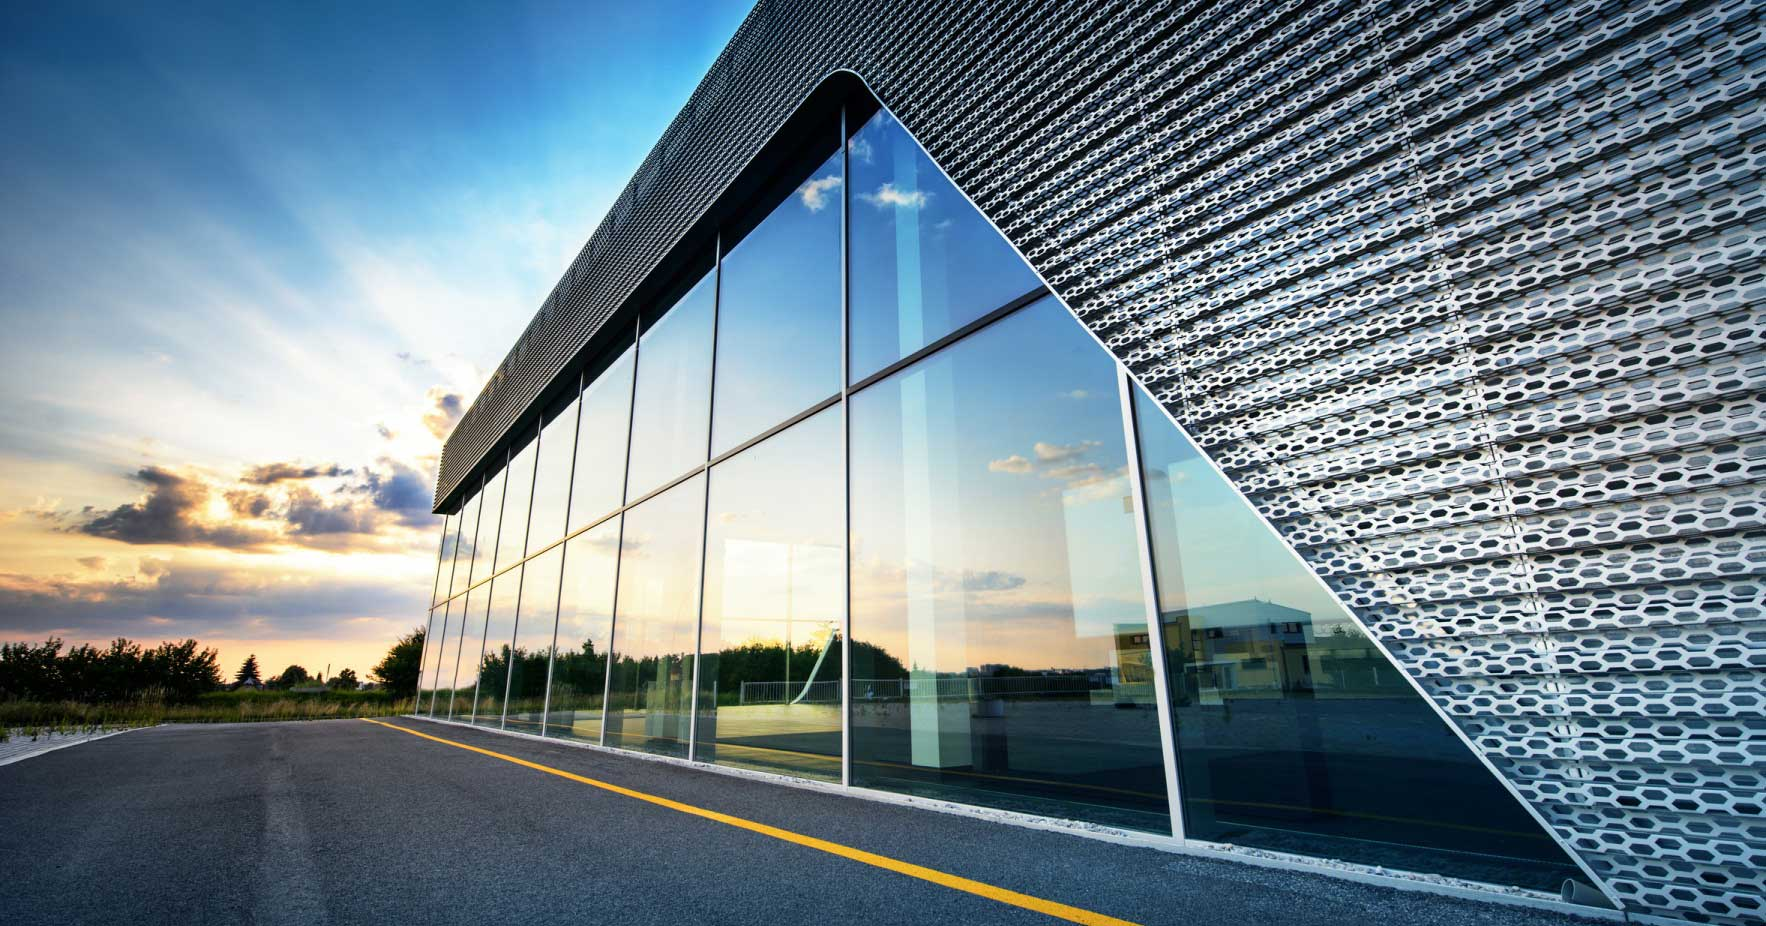 A commercial building managed through easy work order's enterprise saas system